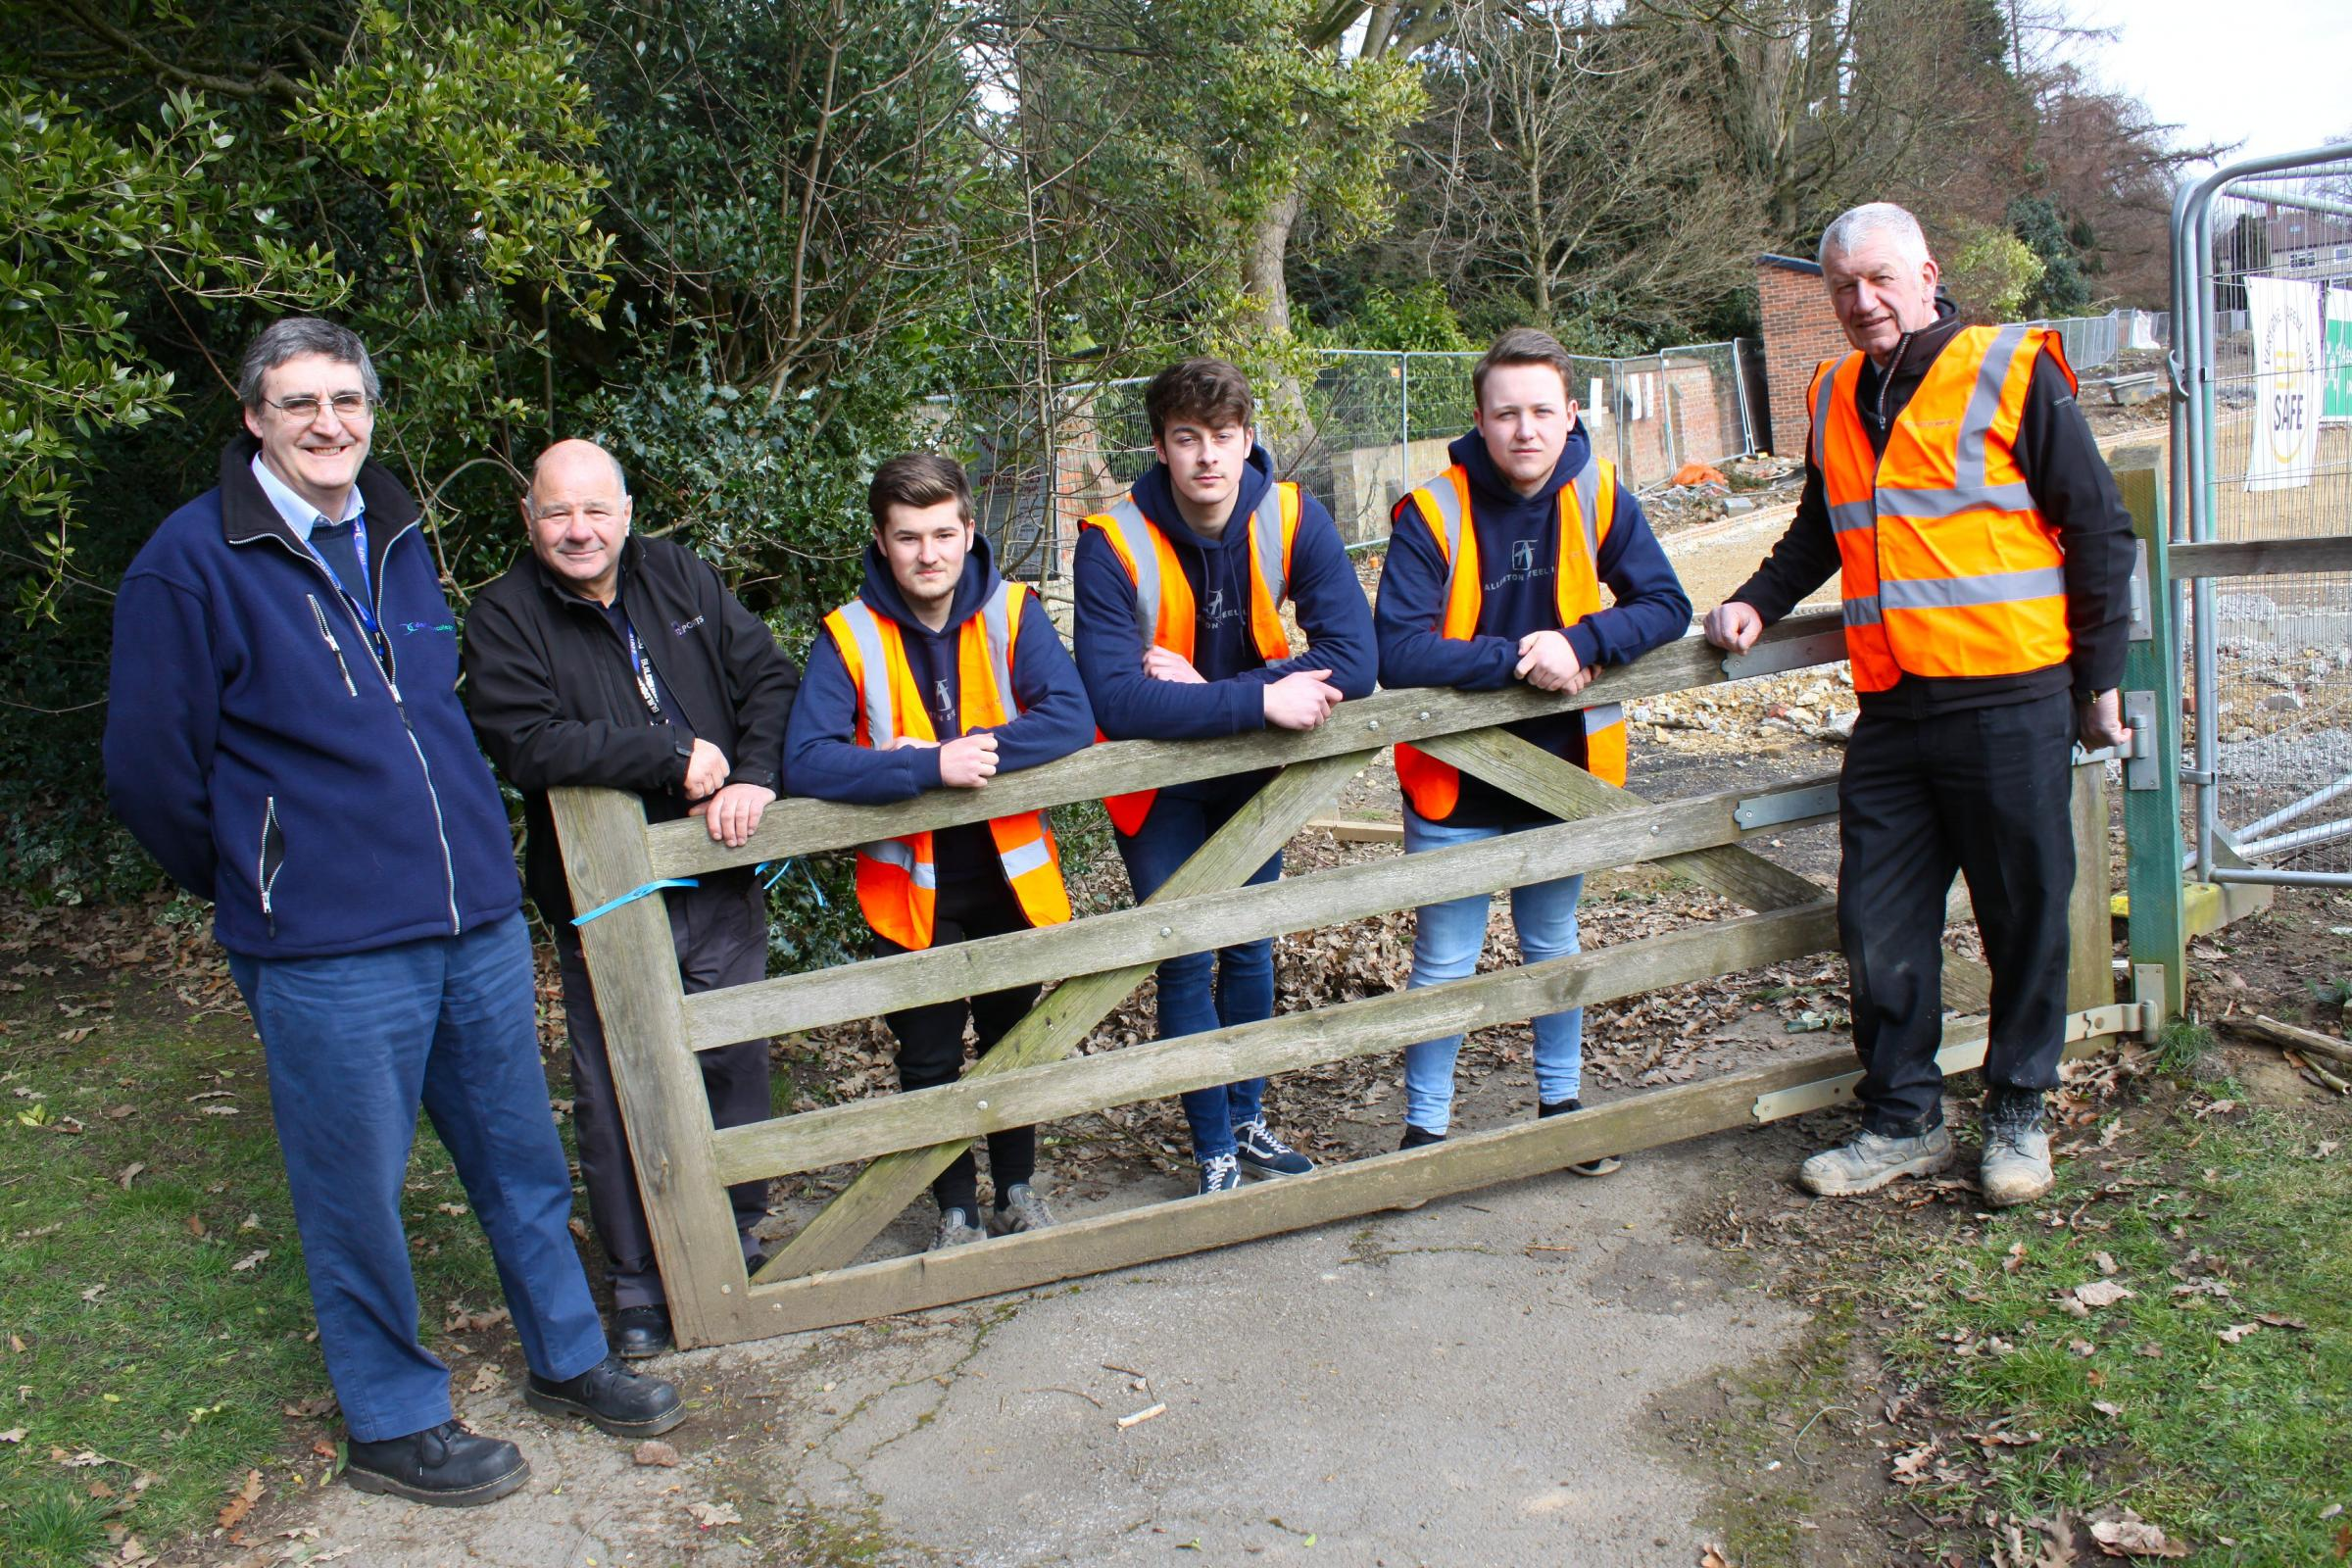 Visiting the site to have a look around recently were, from left, professional engineering tutors Dave Pengilley and Dennis Mccabe; Darlington College apprentice engineers  Dylan Mack, Sam Marchant and Cameron Moss-Cardie, and site manager Ian Swainston